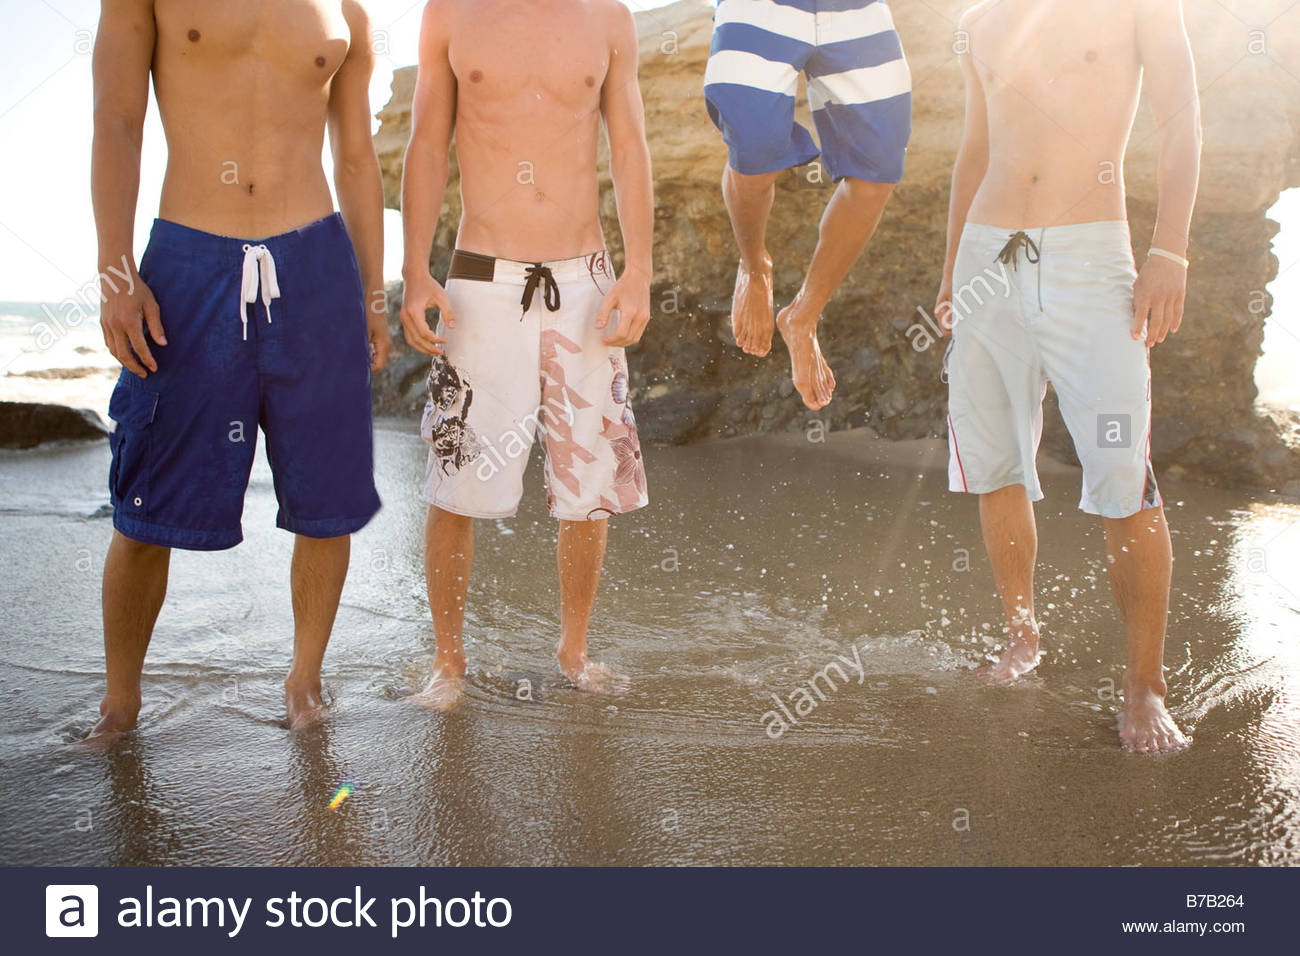 Multi-ethnic group of men standing on beach - Stock Image